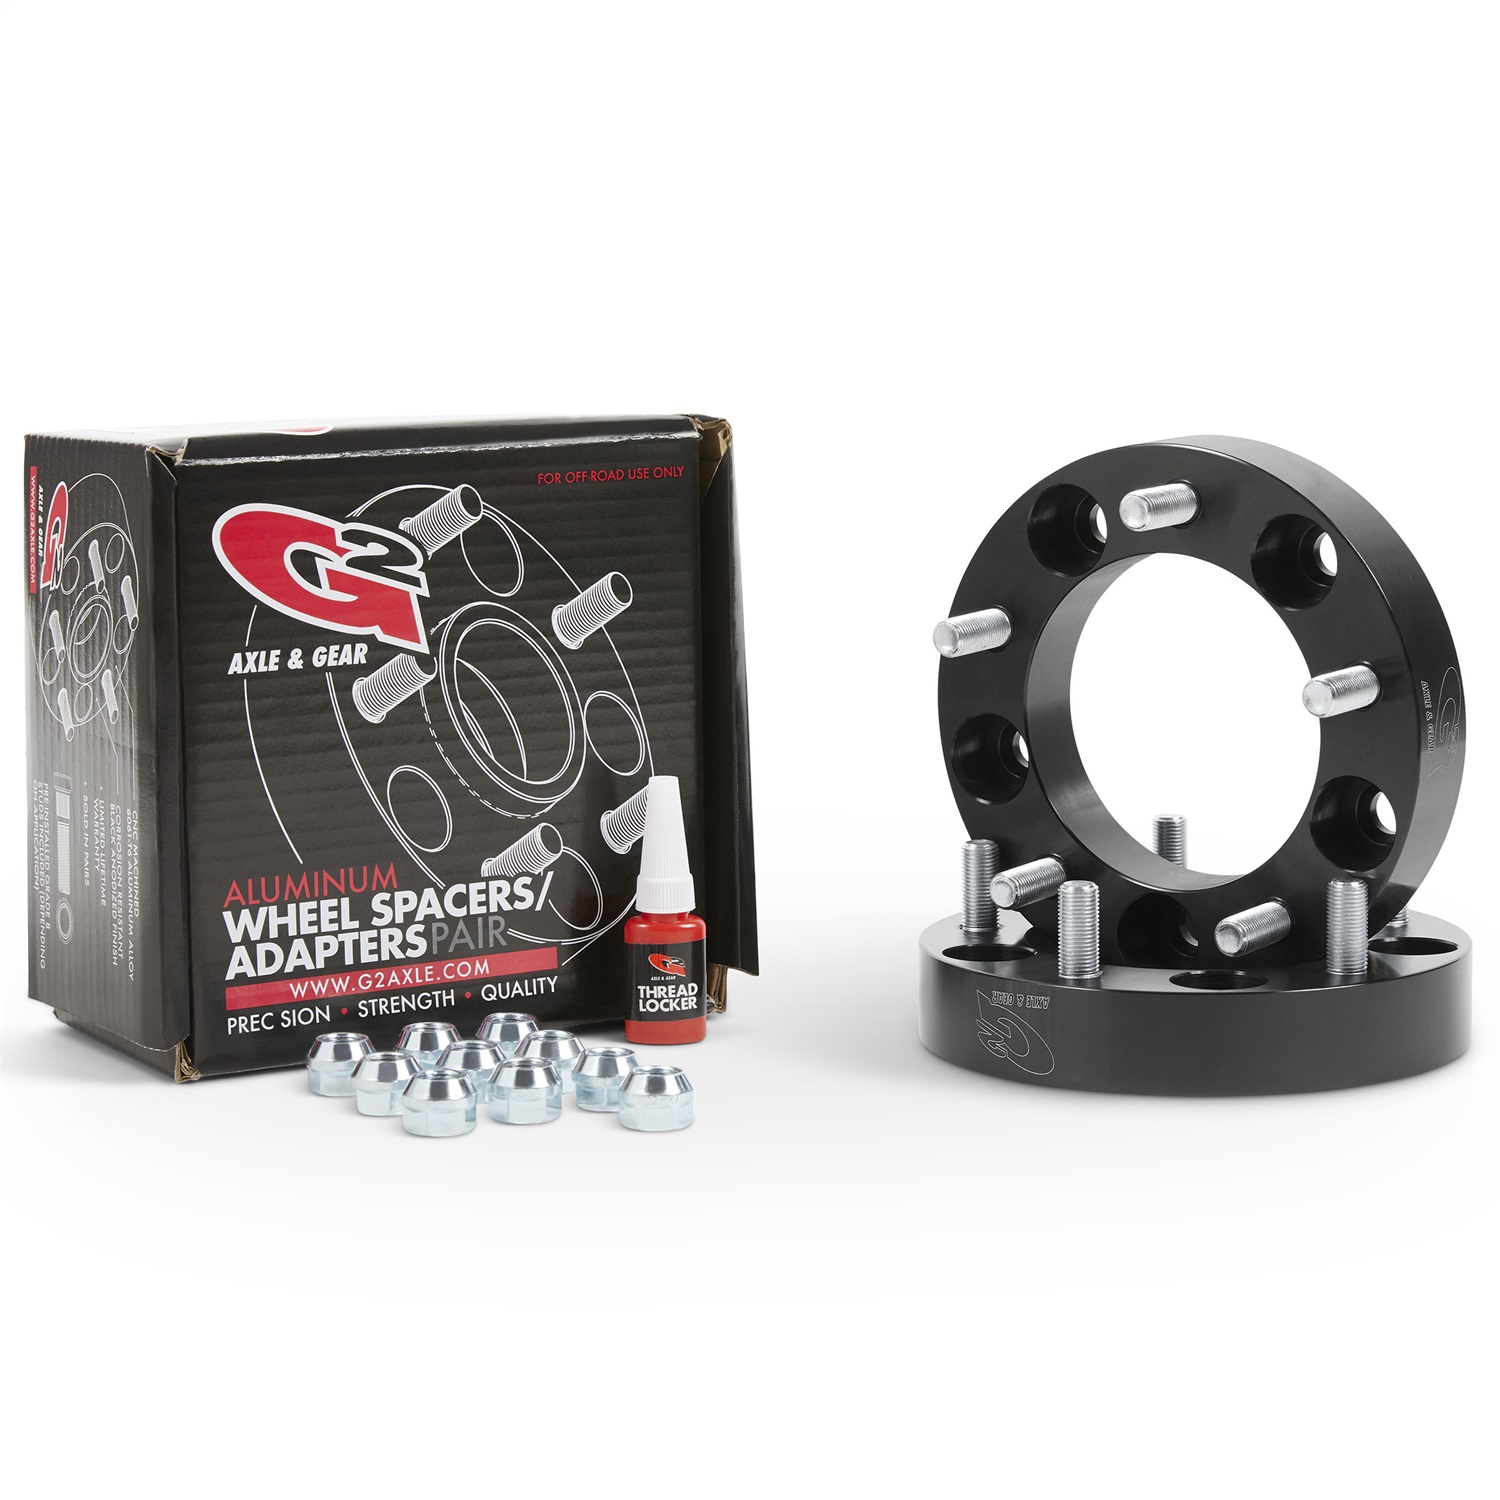 G2 Axle and Gear 93-85-125 Wheel Spacer Kit